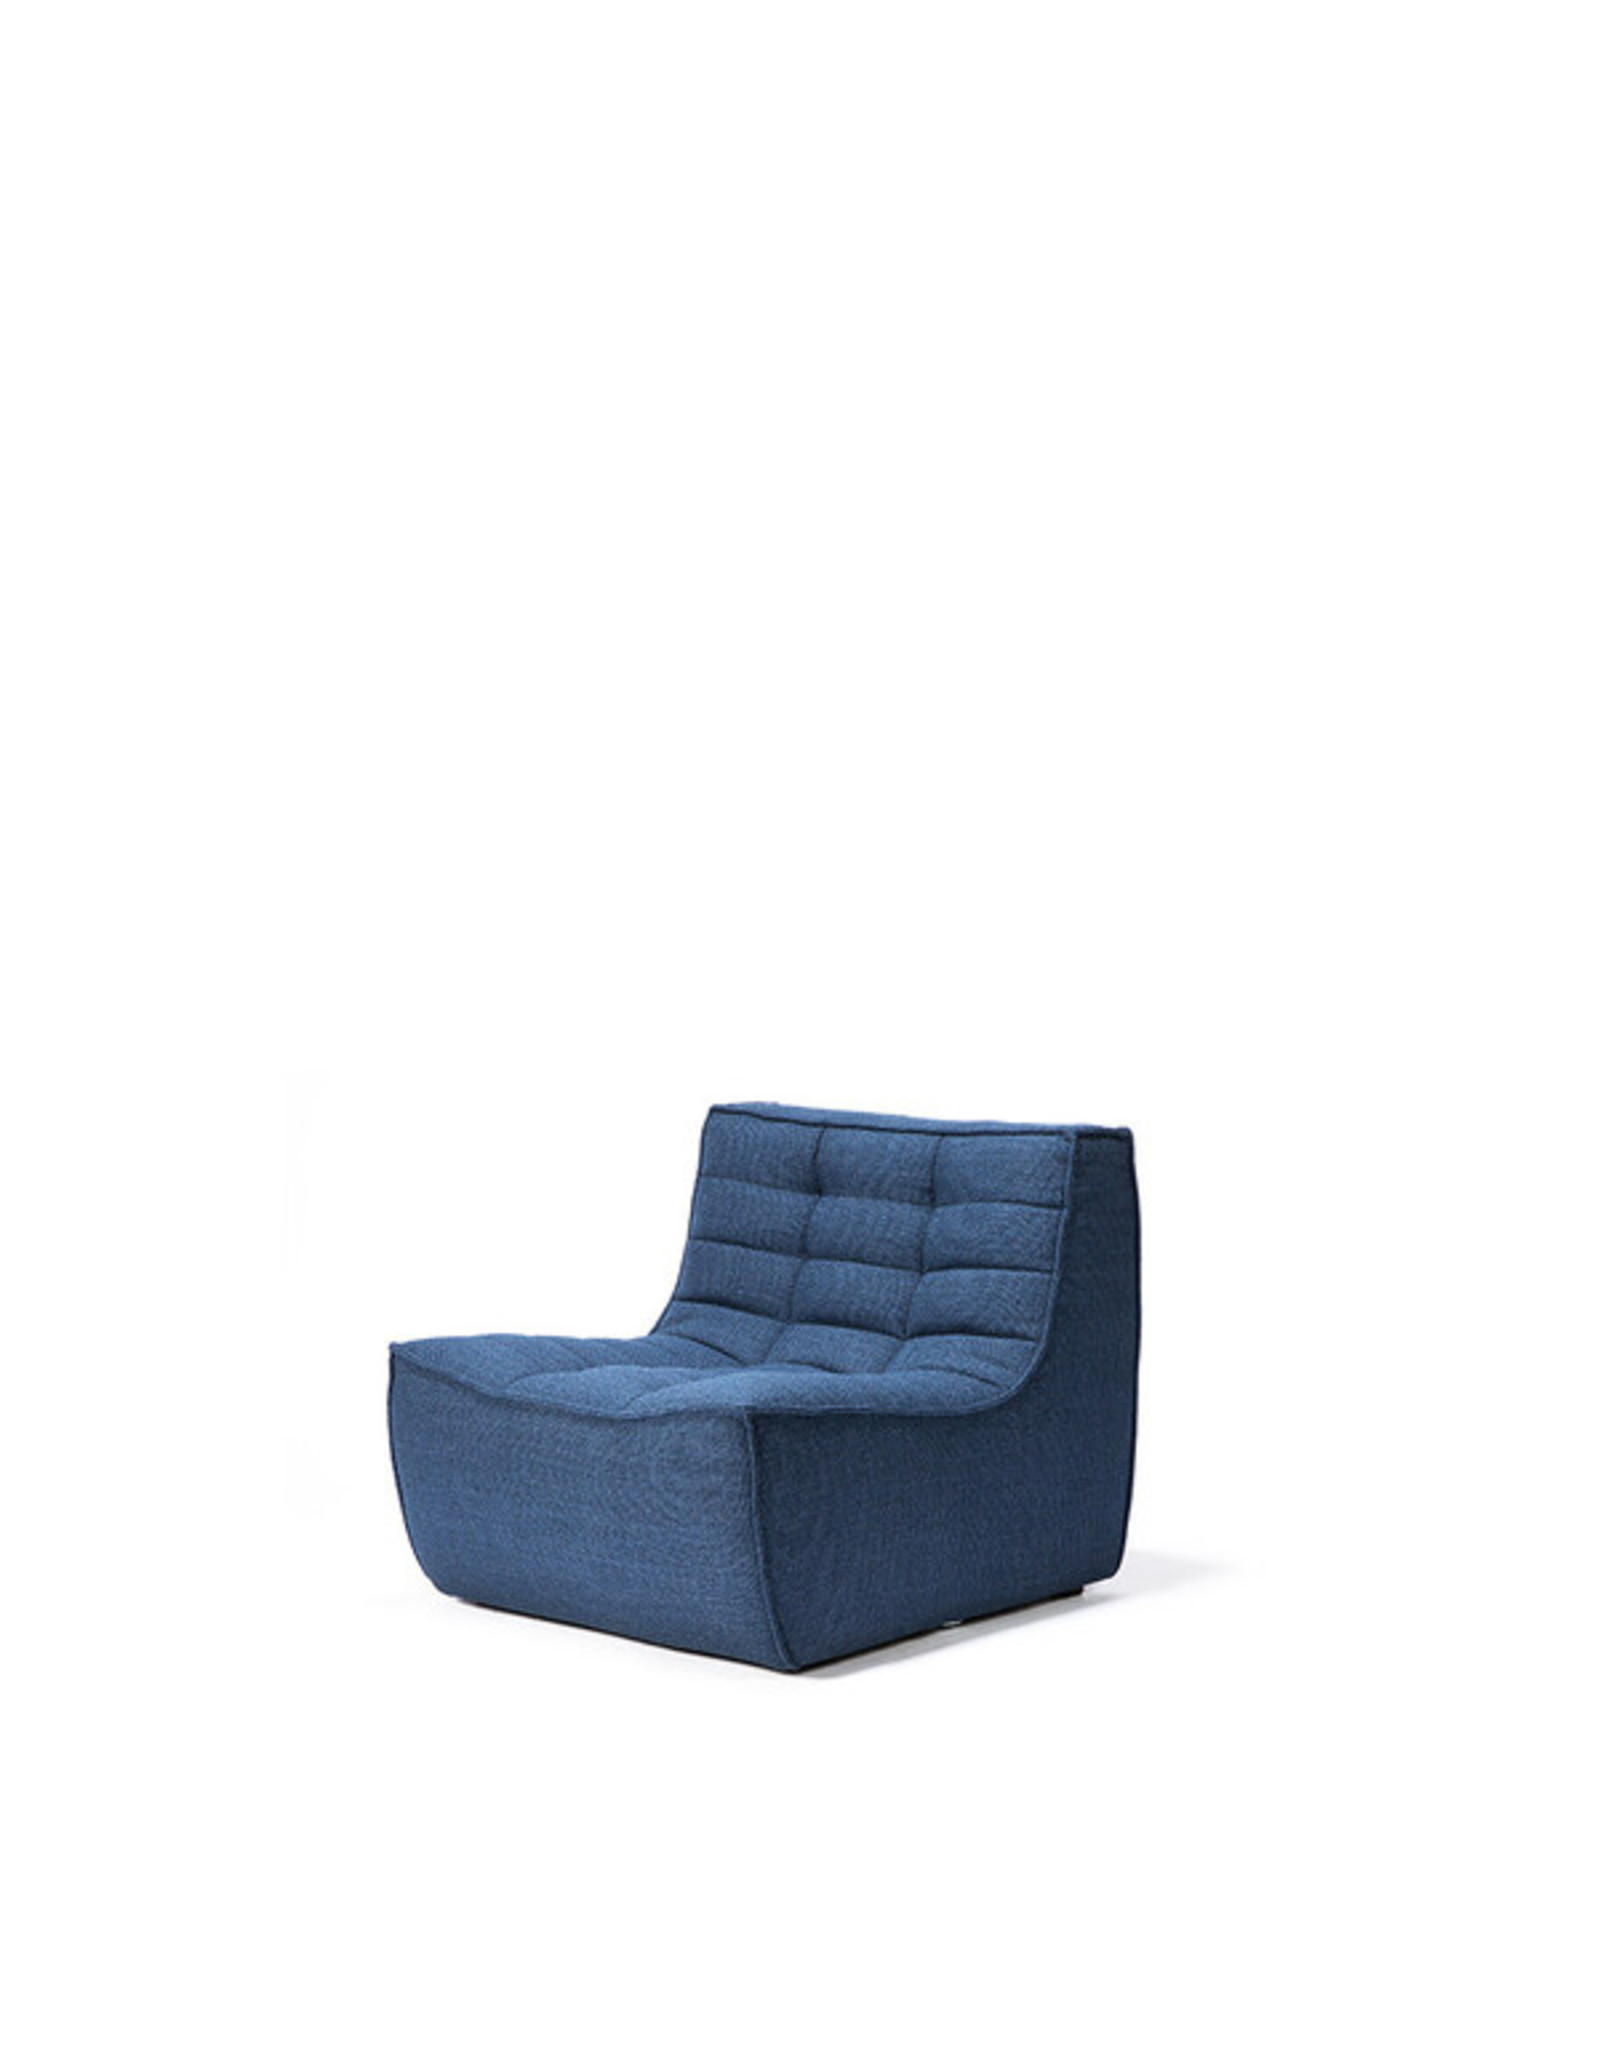 Ethnicraft N701 One Seater - Blue